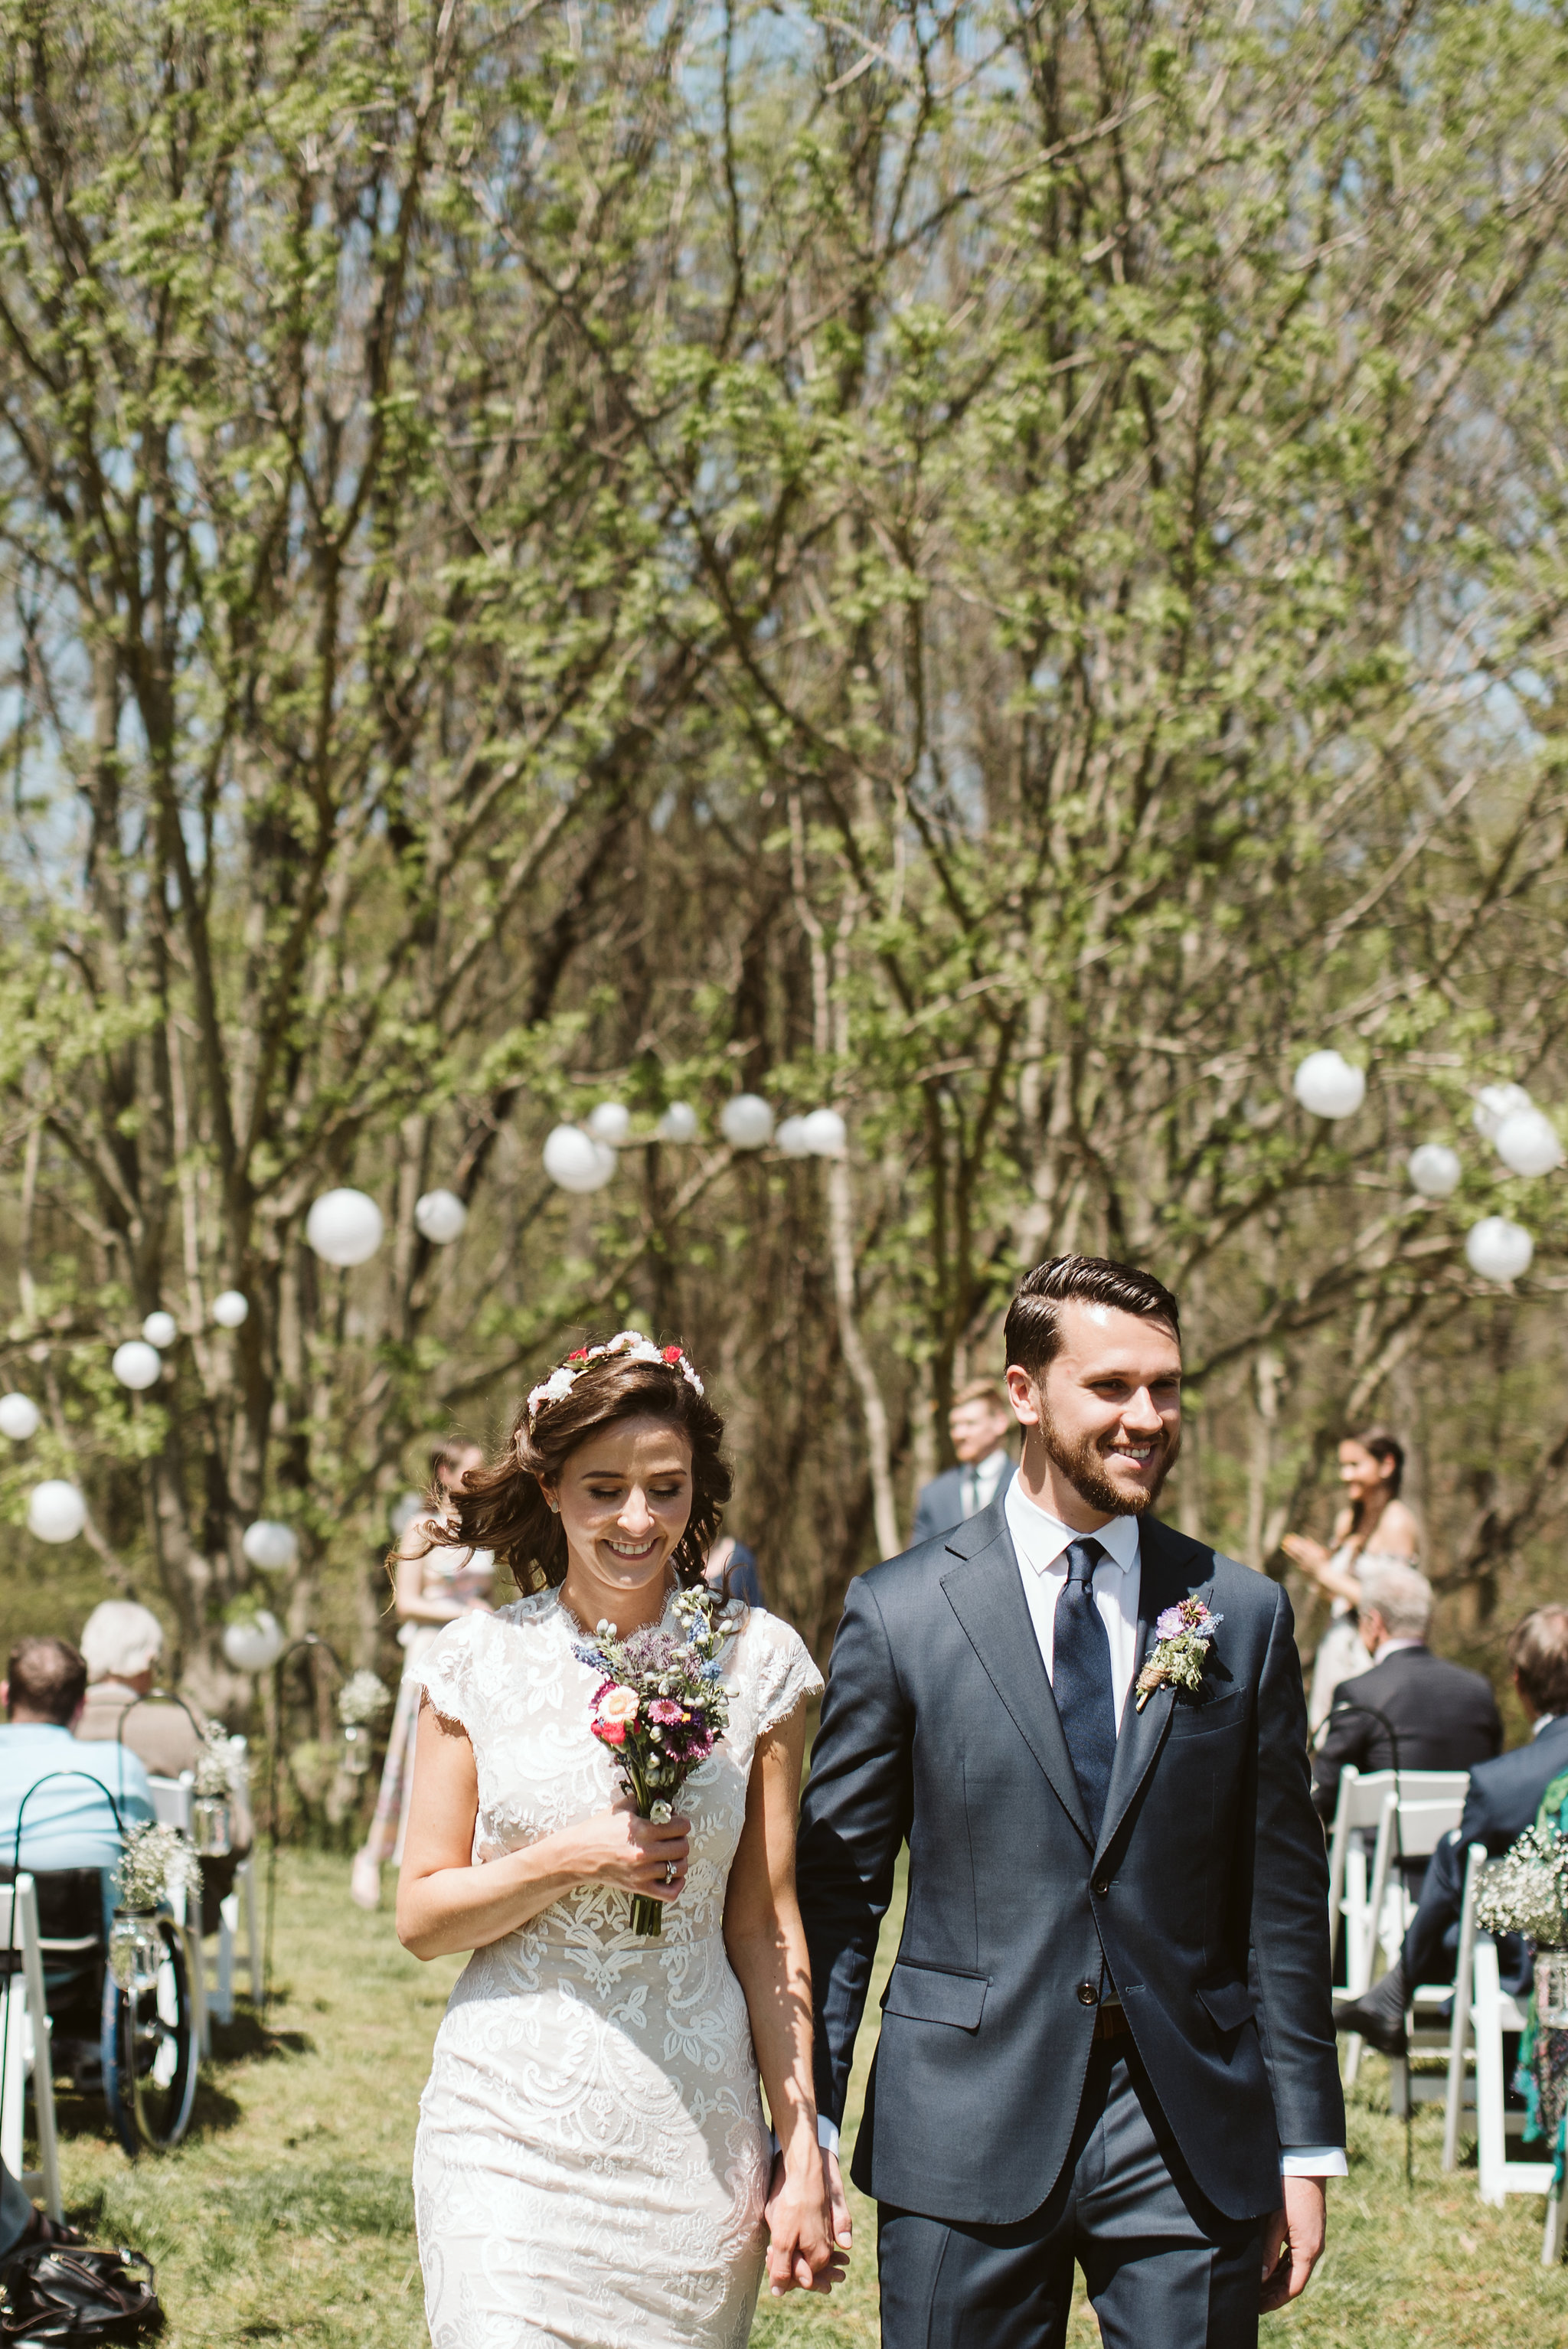 Spring Outdoor Wedding, Park, Baltimore Wedding Photographer, DIY, Classic, Upcycled, Garden Party, Romantic, Bride and Groom Just Married, Wildflowers, Flower Crown, Suit Supply, BHLDN Dress, Nordstrom Rack Tie